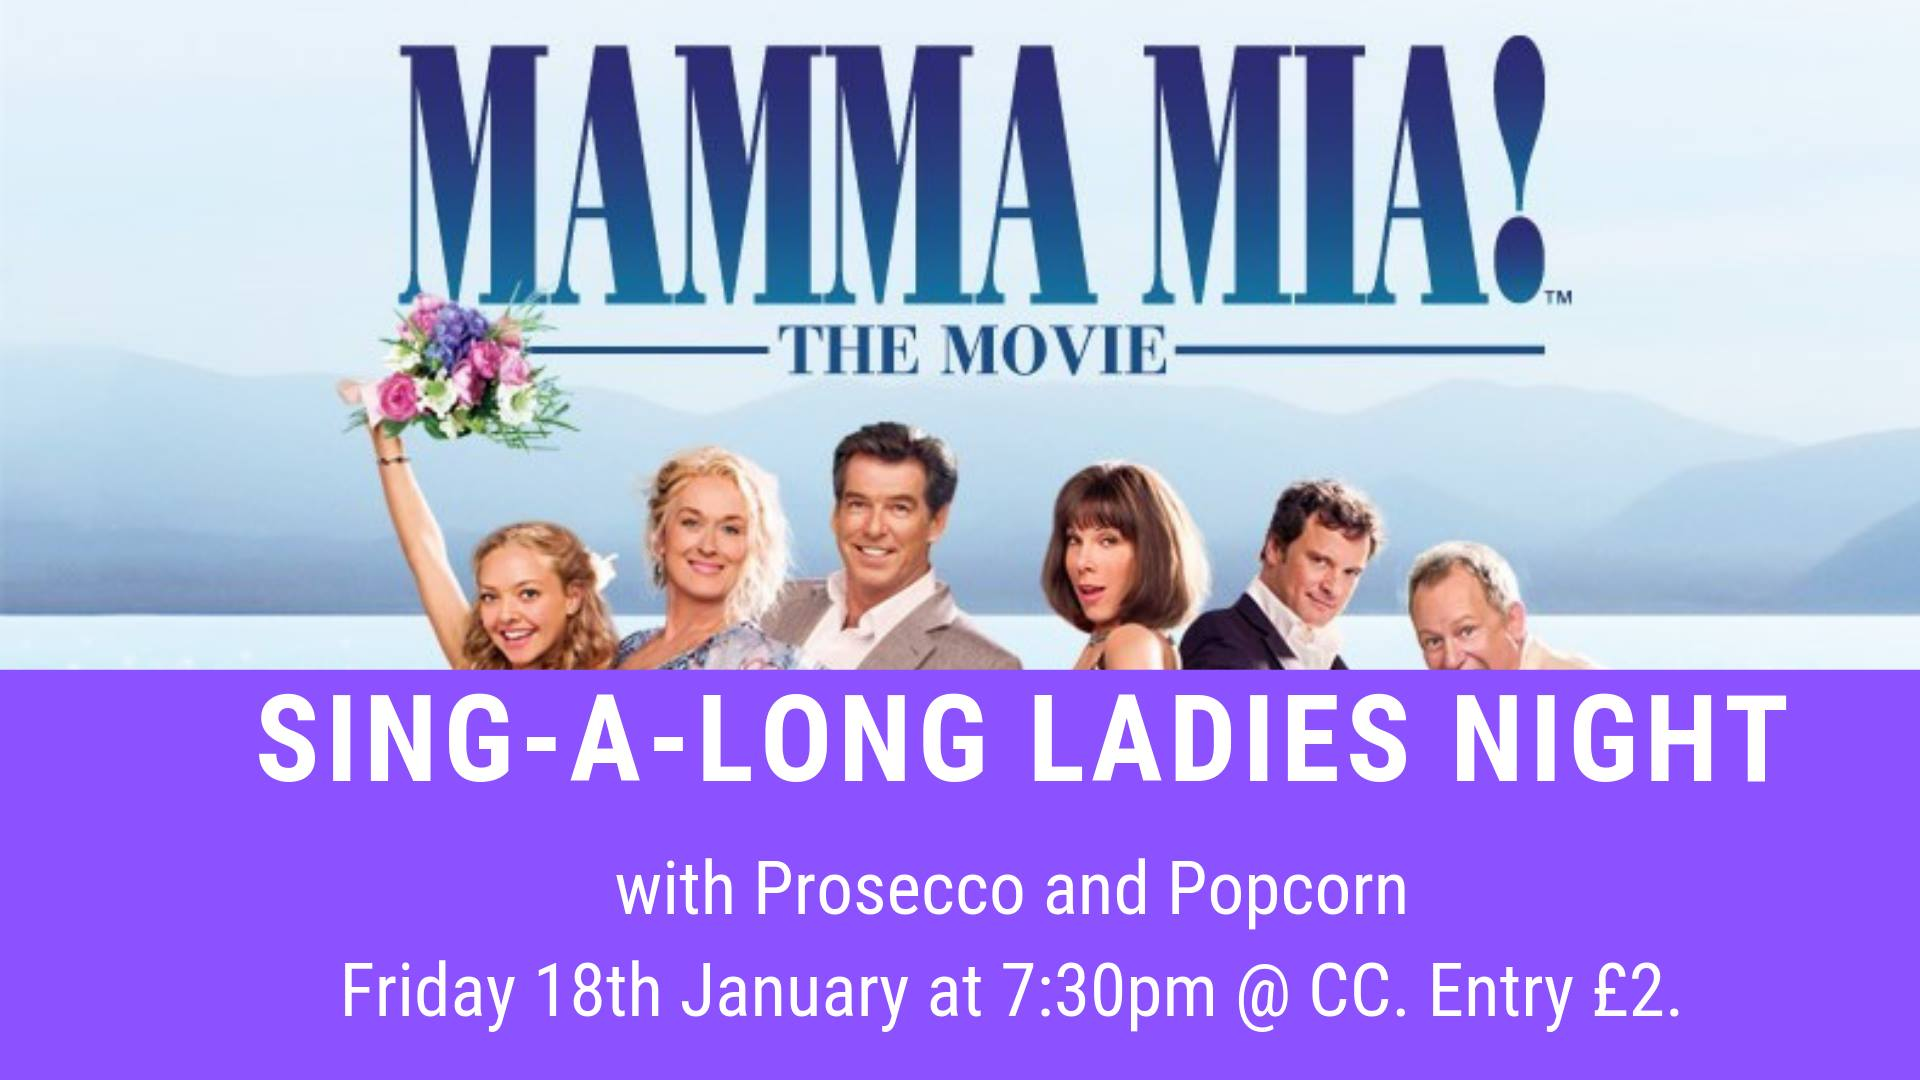 Mamma Mia - Movie Singalong Ladies Night event.